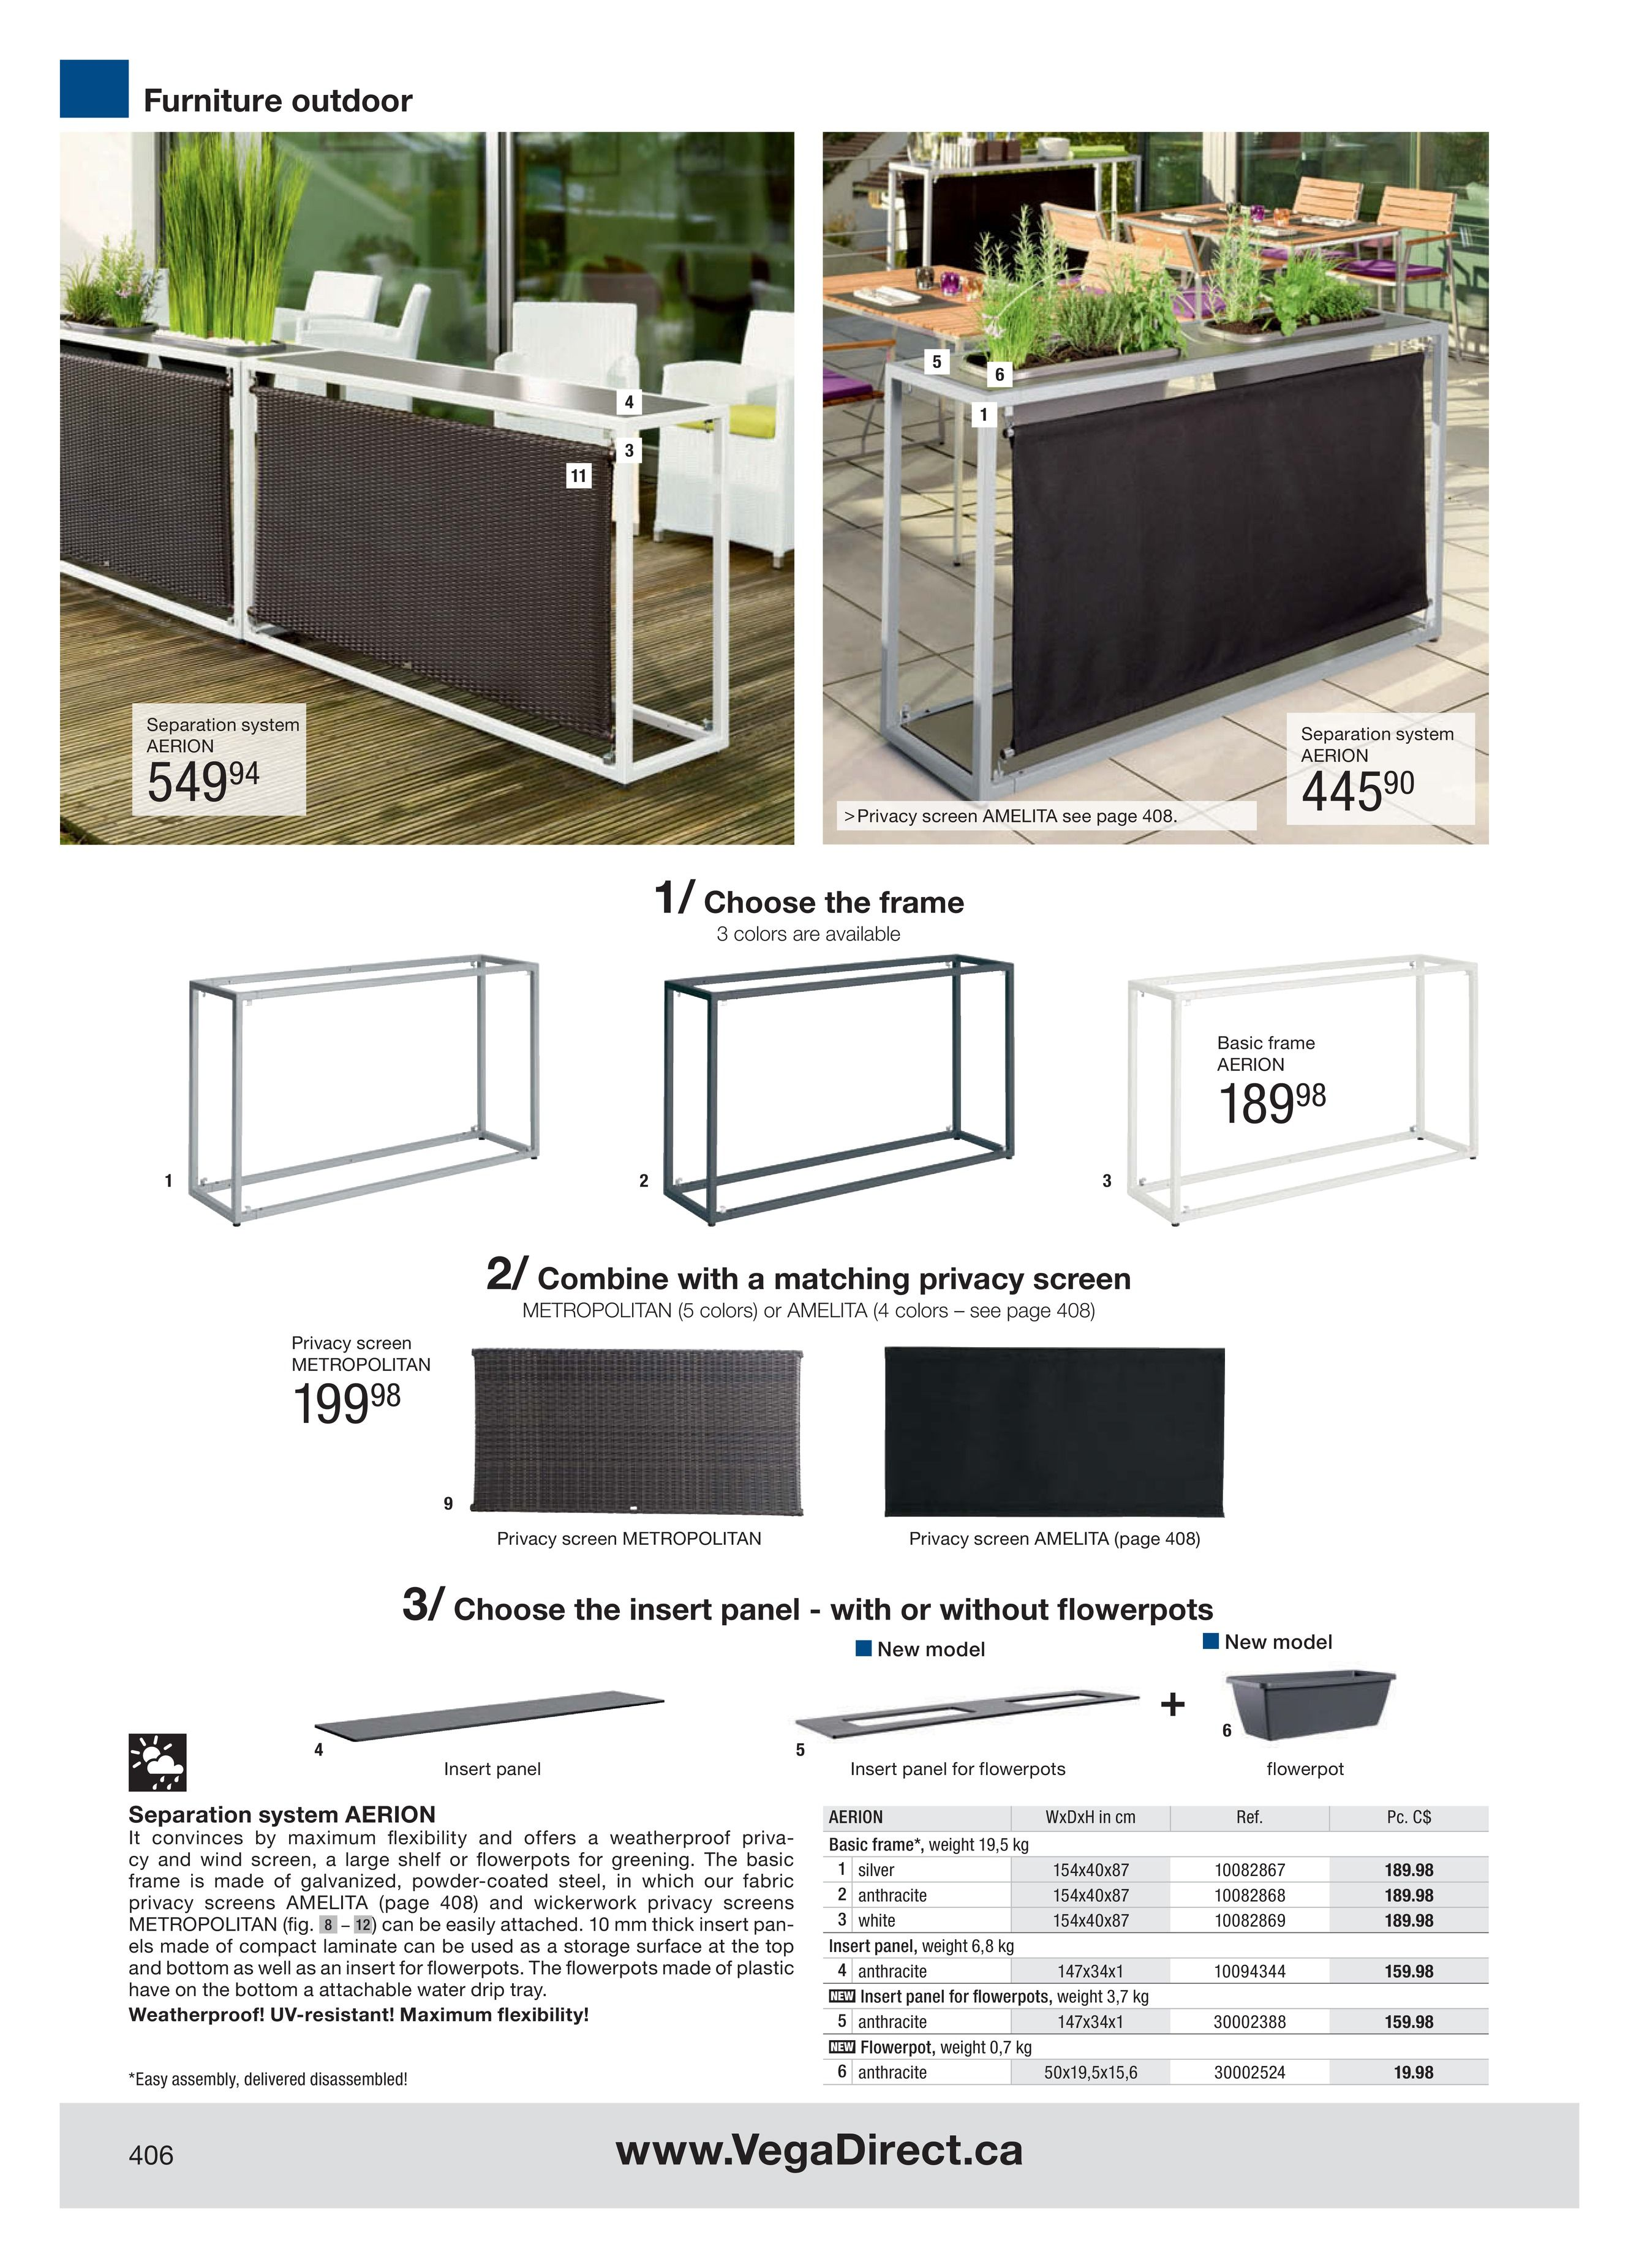 Category furniture outdoor page no 405